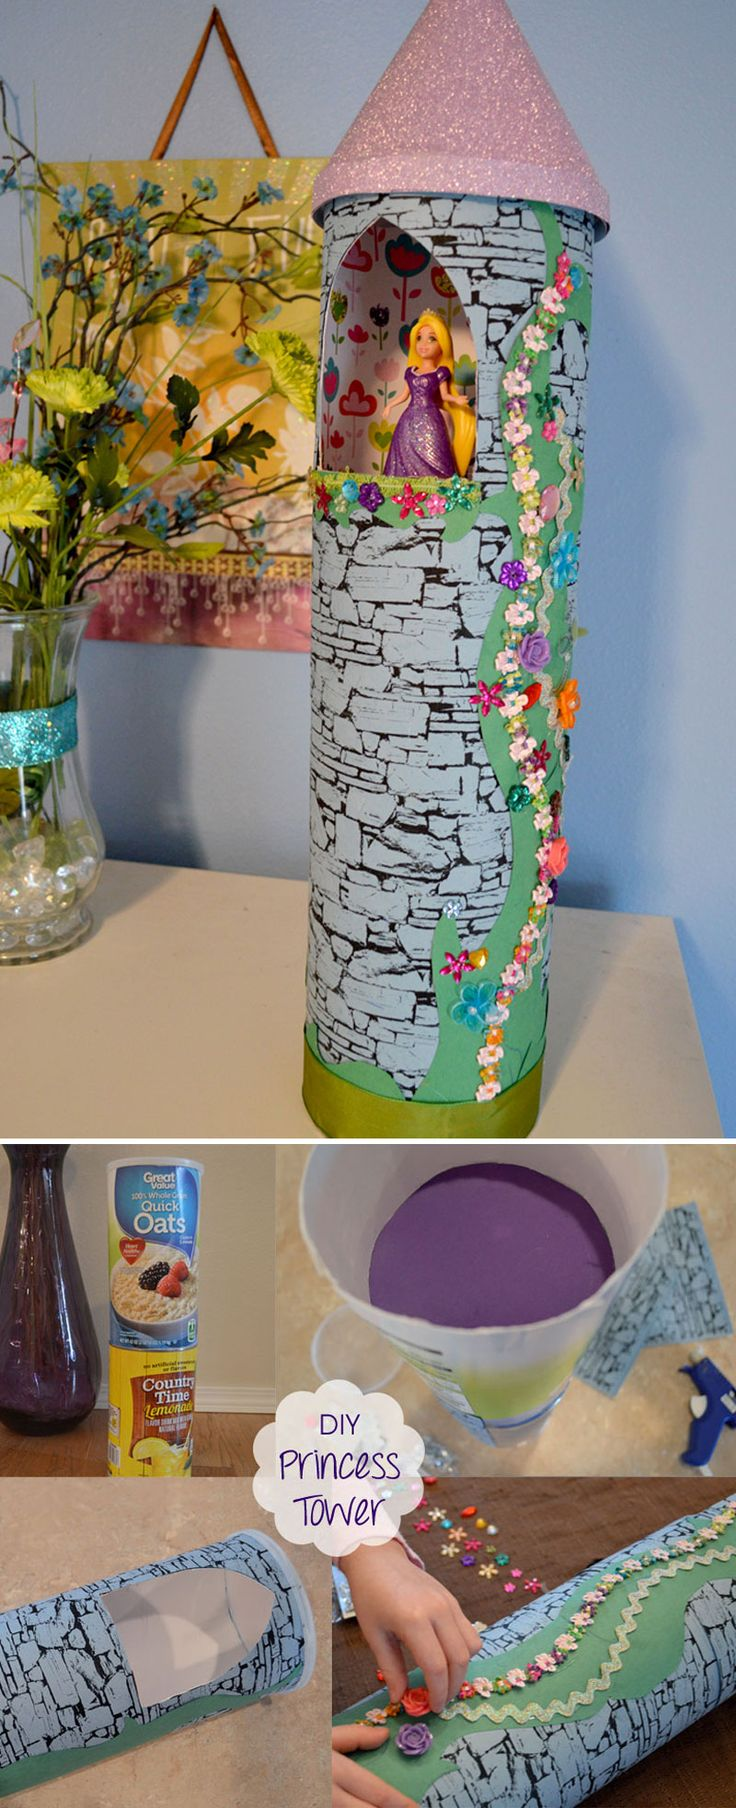 DIY recycled Rapunzel princess tower made from cardboard food containers, fun kids craft.